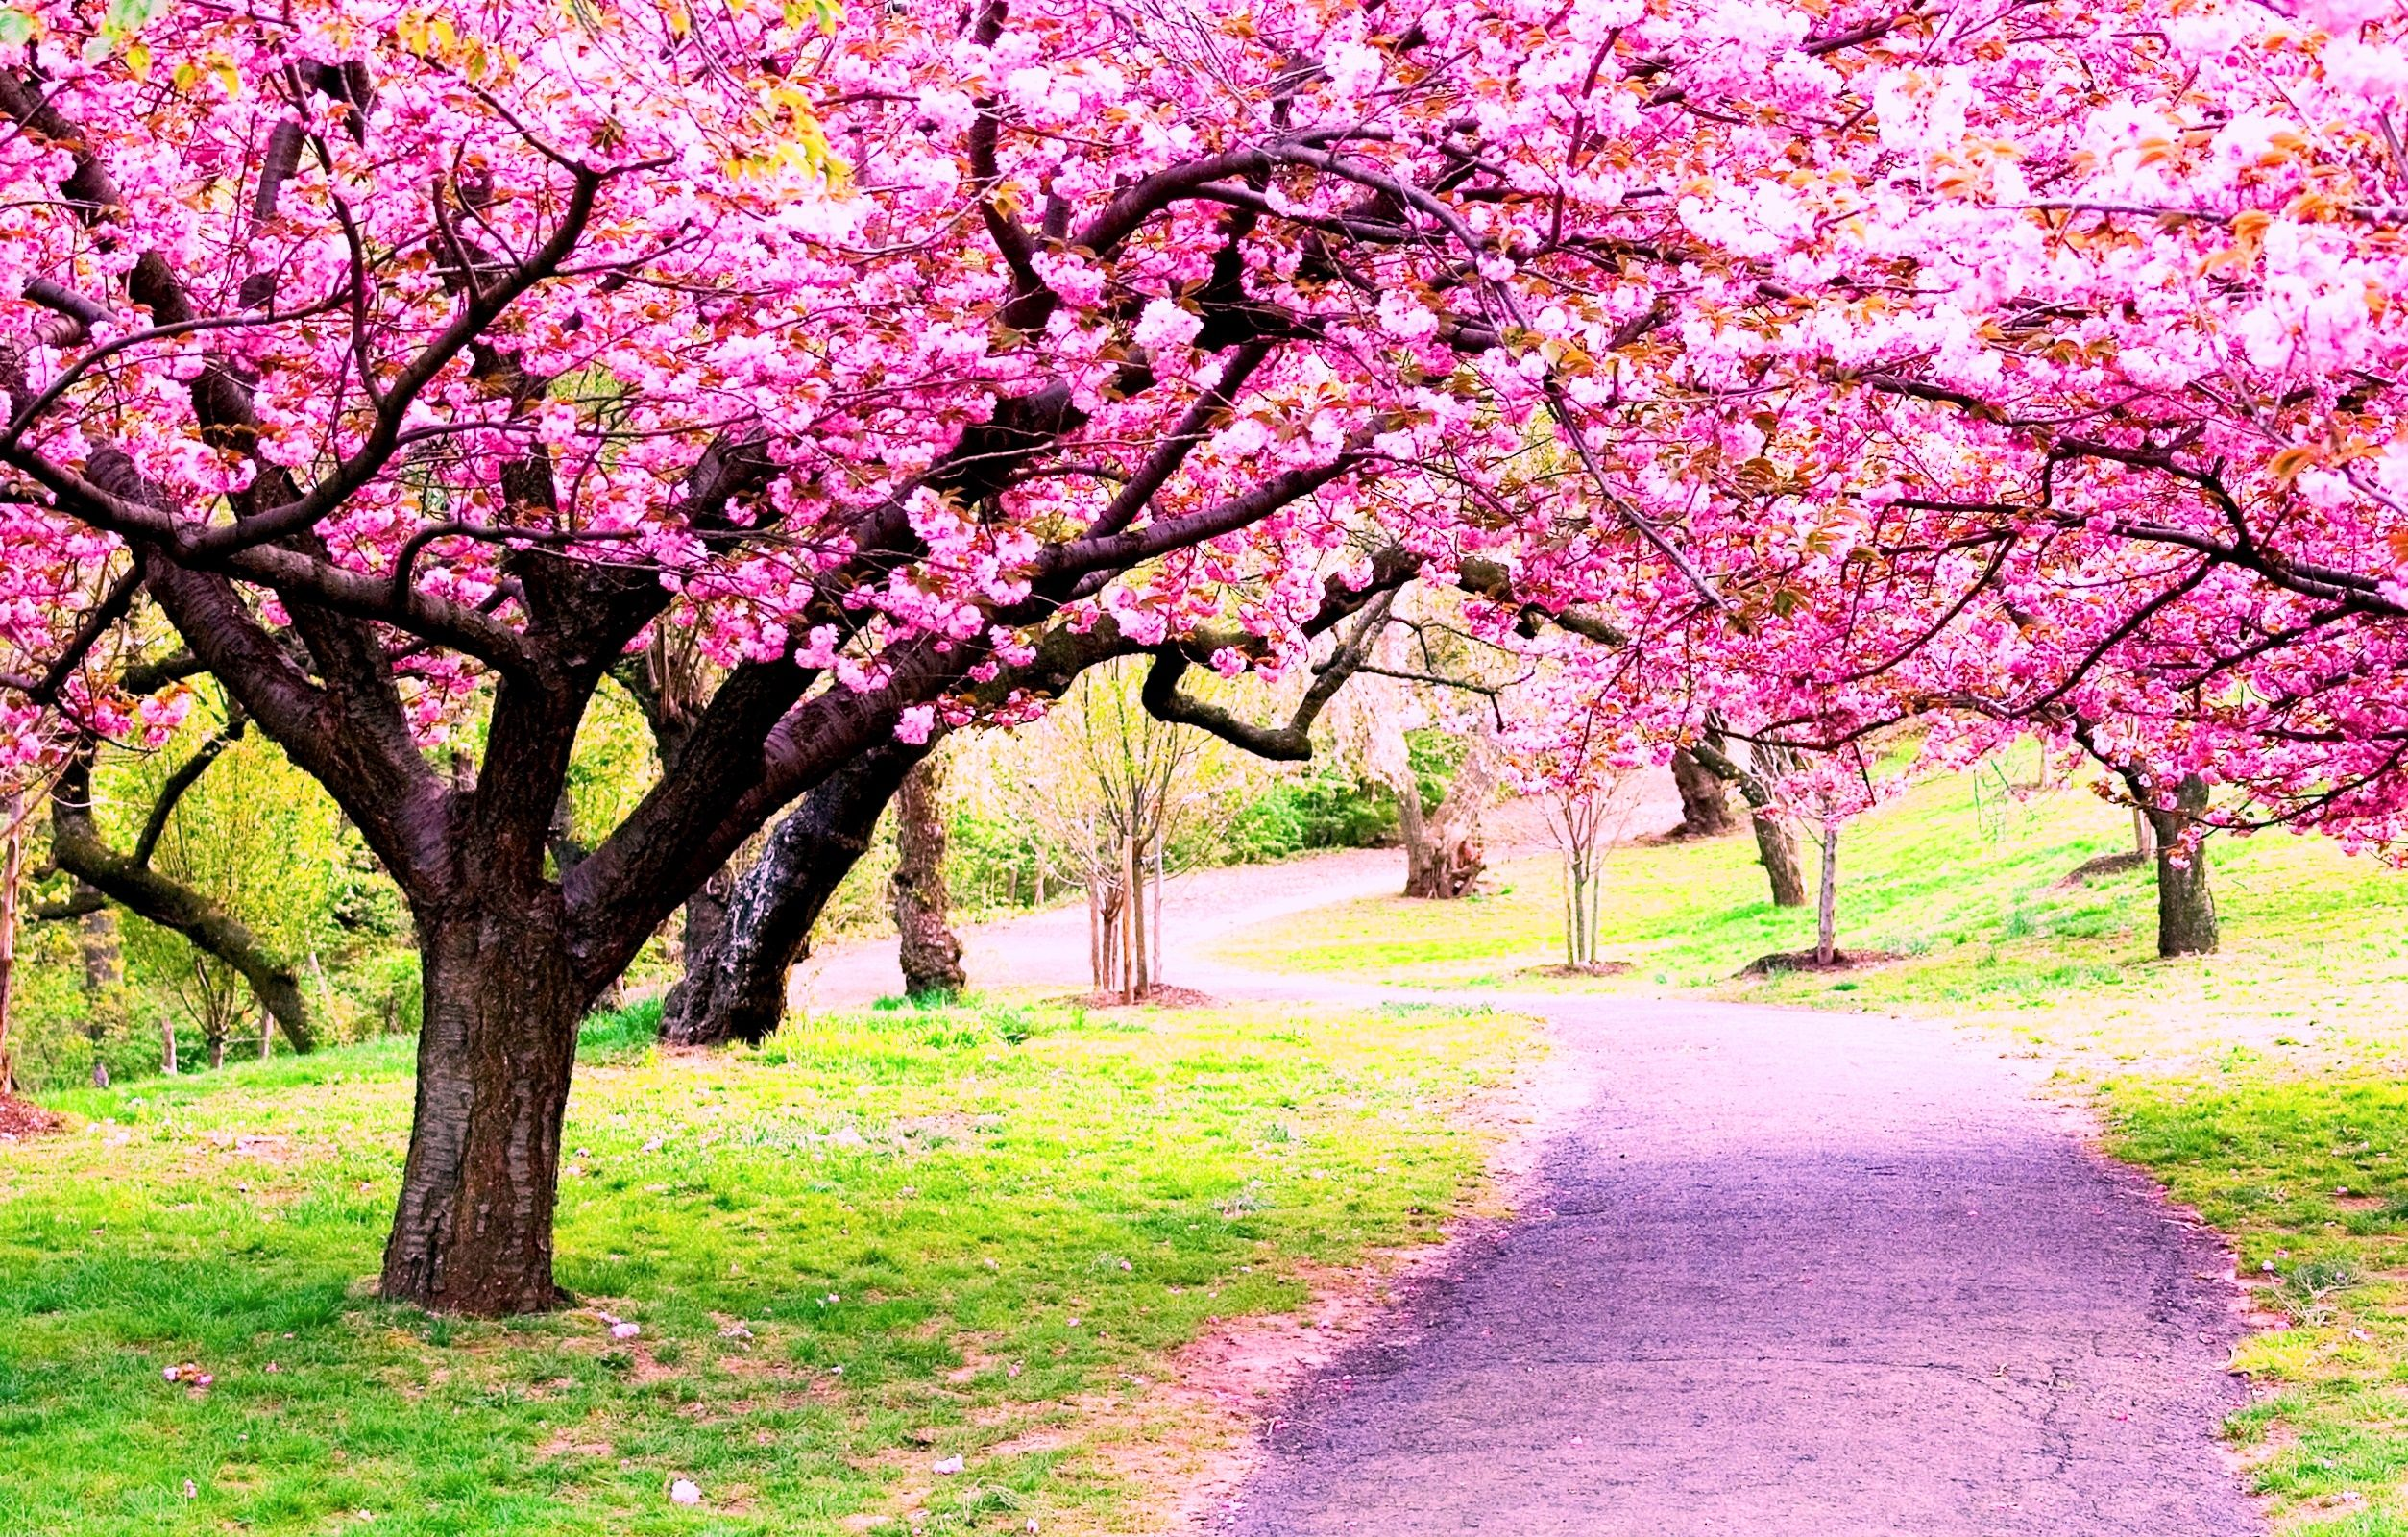 Cherry Blossom Soap Blossom Trees Flowering Trees Spring Pictures